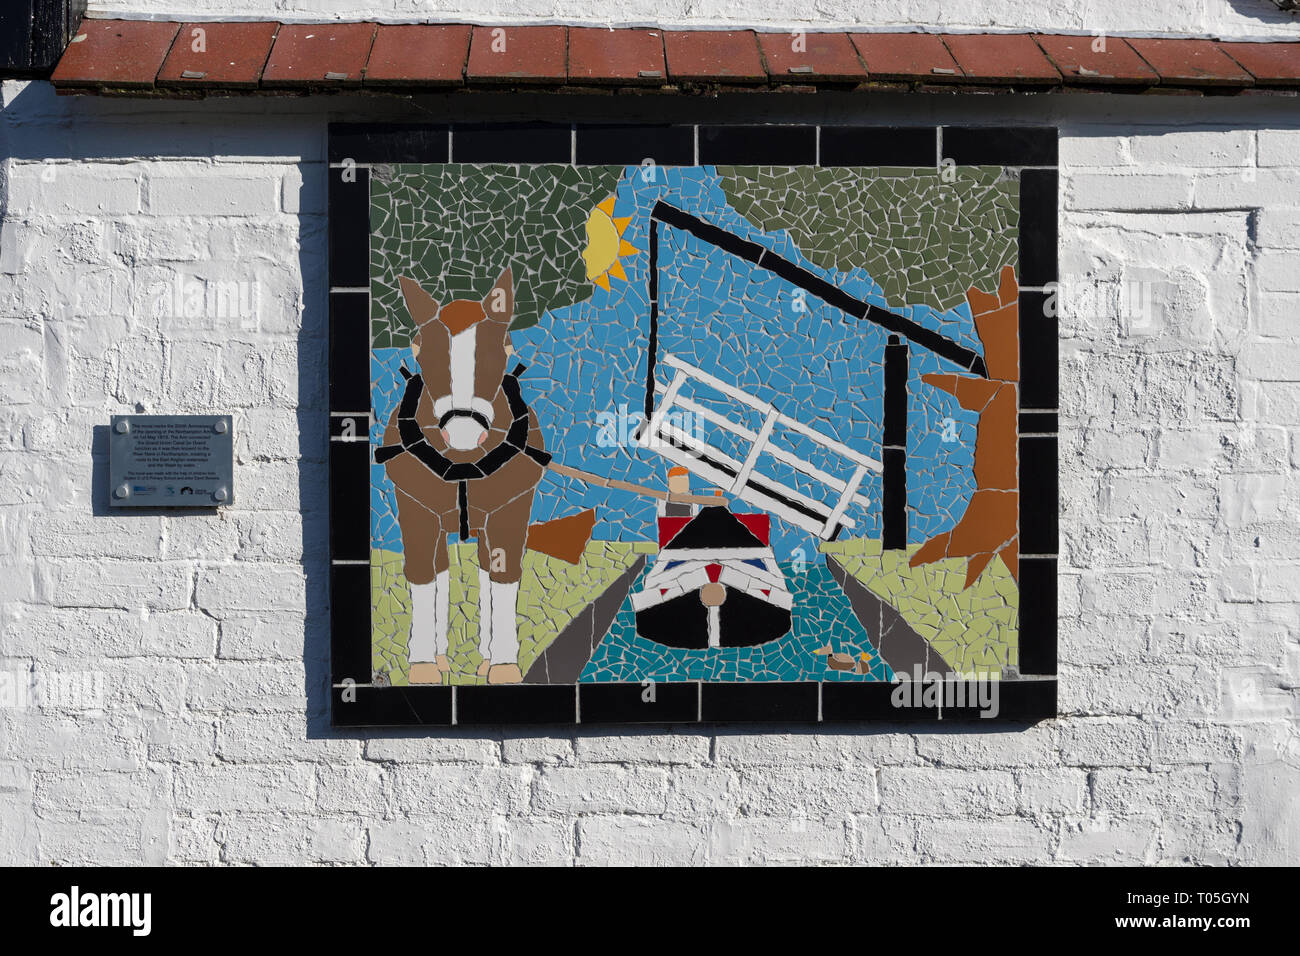 Mural for the 200th anniversary of the opening of Northampton Arm of the Grand Union canal, Blisworth Arm, Northamptonshire, UK - Stock Image